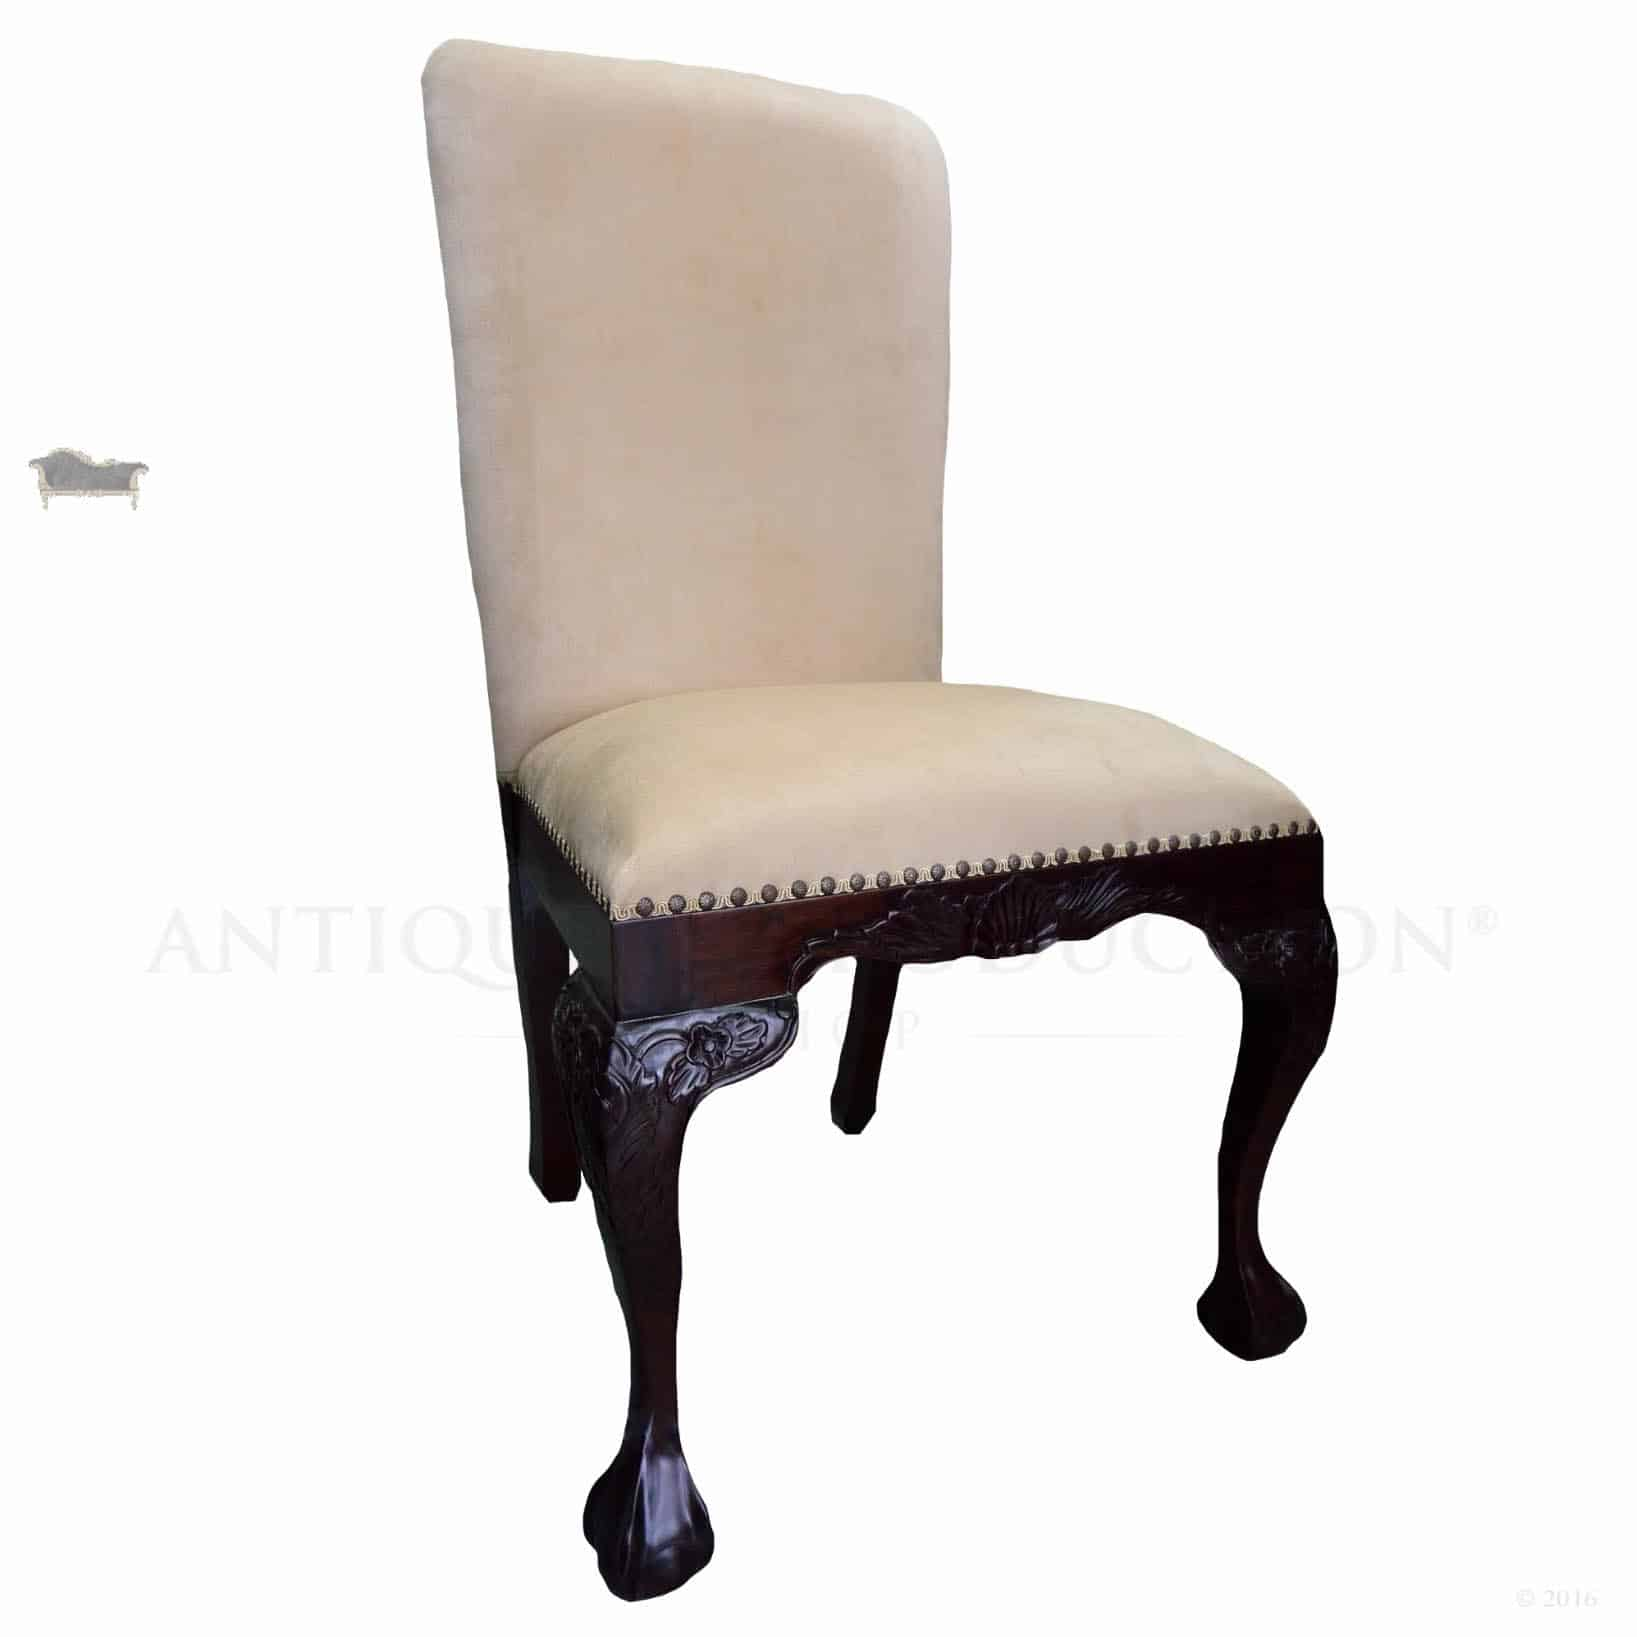 upholstered chairs dining best laptop chair chippendale antique